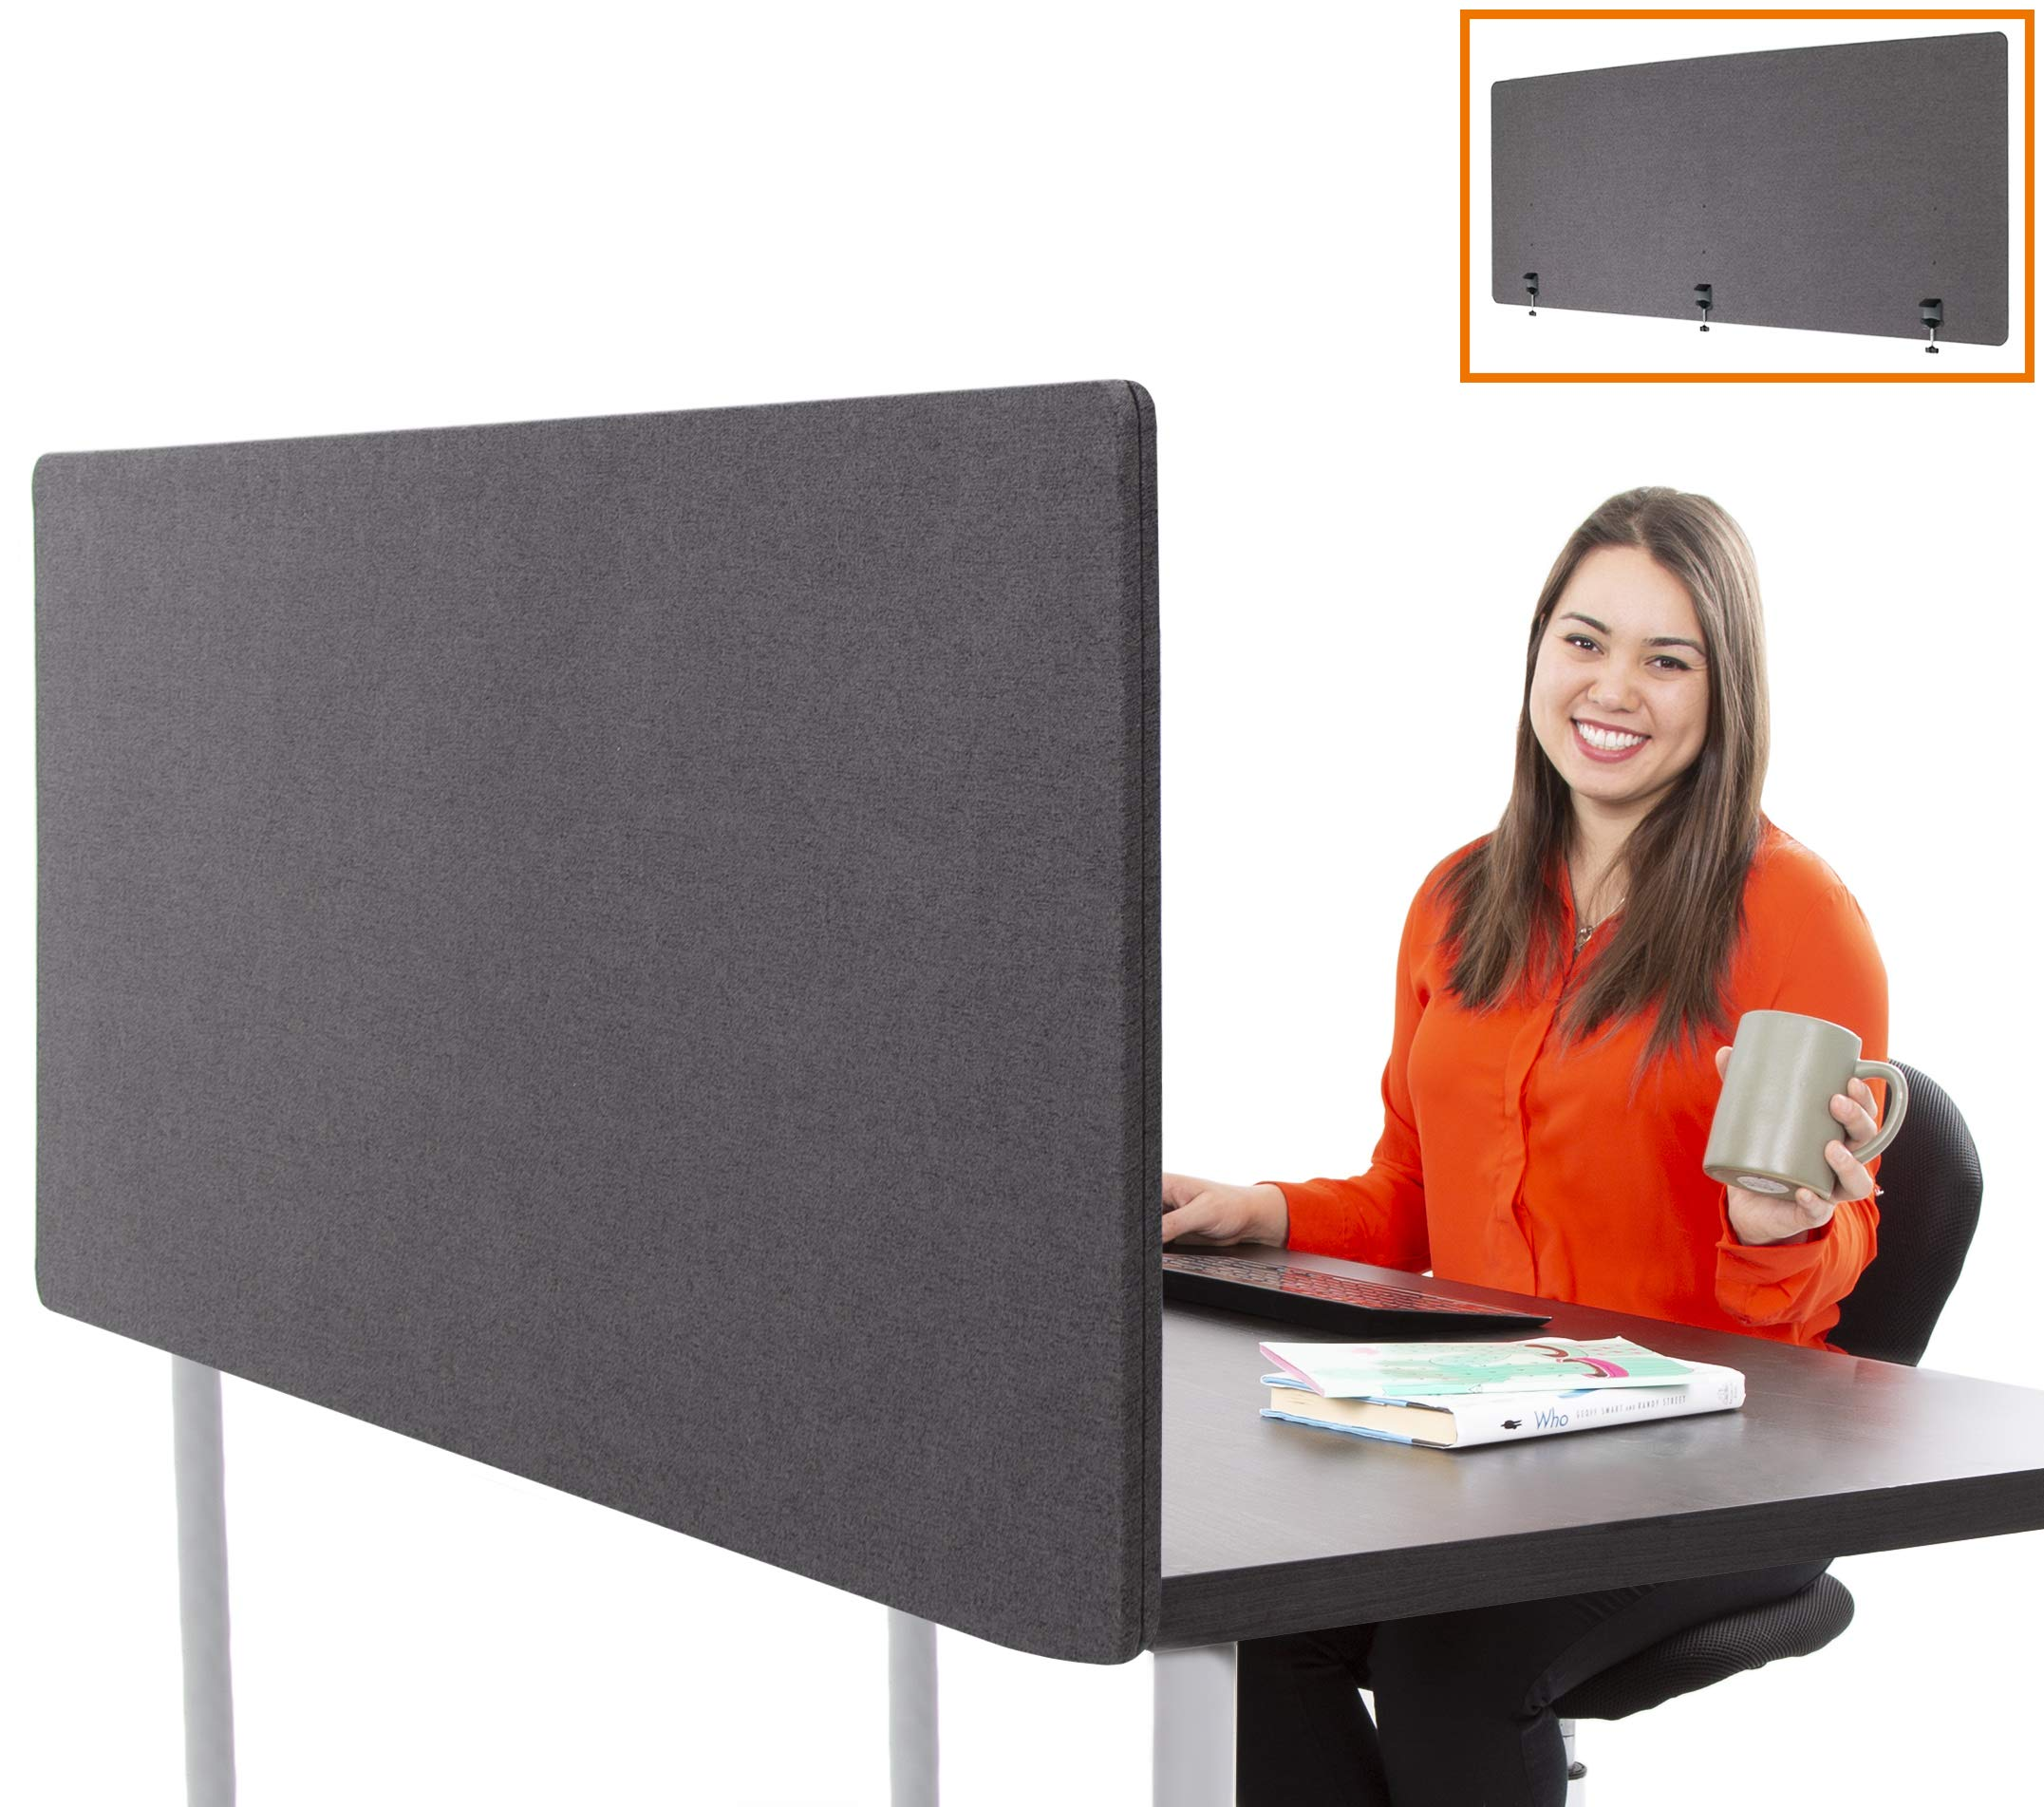 Stand Steady ClipPanels Desk Mounted Privacy Panels | Height Adjustable Desk Divider| Easy Clamp on Privacy Screen or Modesty Panel - Reduces Up to 85% of Noise | (Gray / 60'' x 24'')